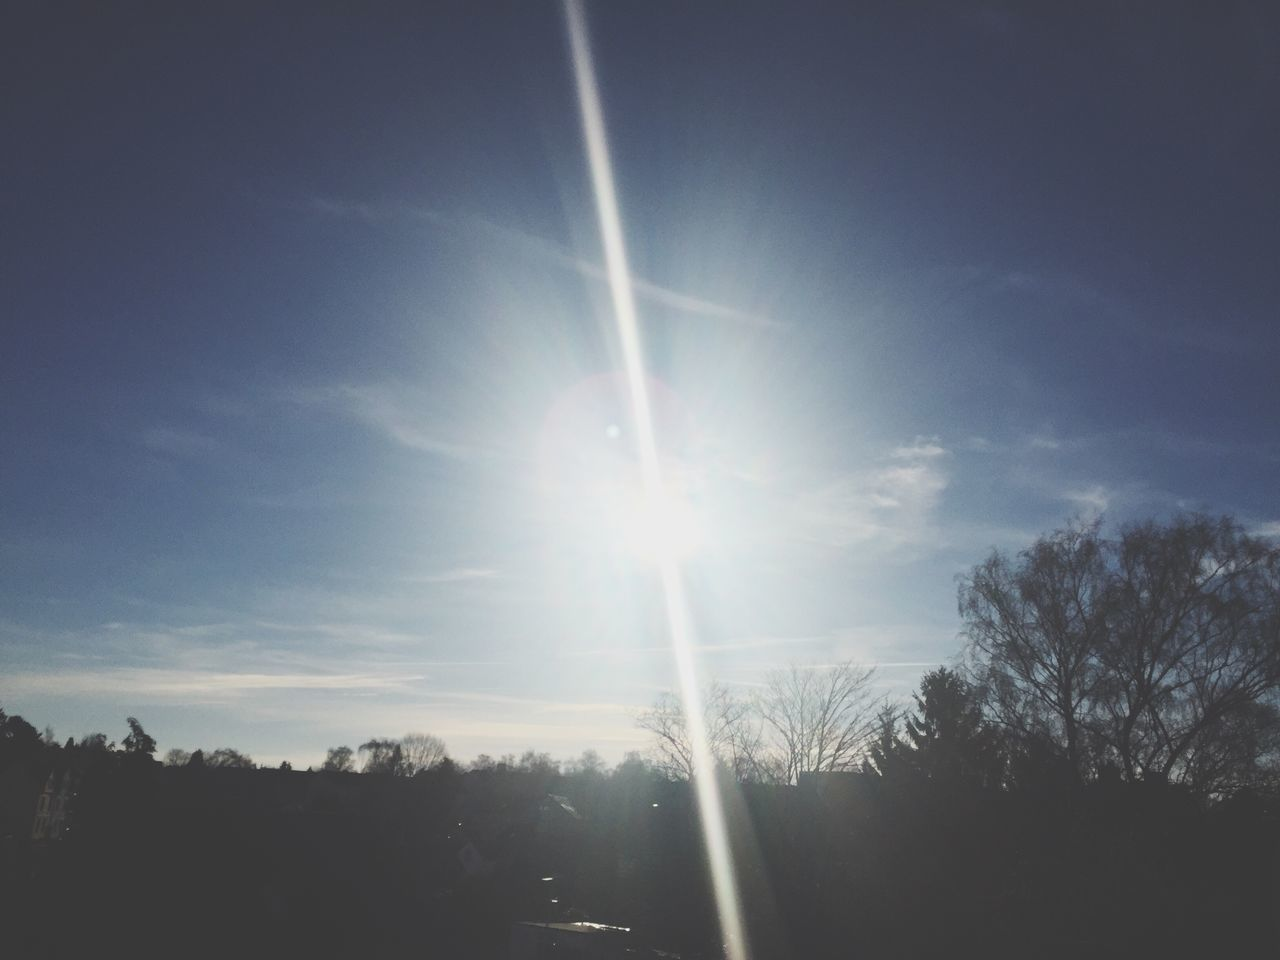 sunbeam, sun, sunlight, nature, beauty in nature, scenics, tranquility, sky, no people, tree, tranquil scene, outdoors, silhouette, day, vapor trail